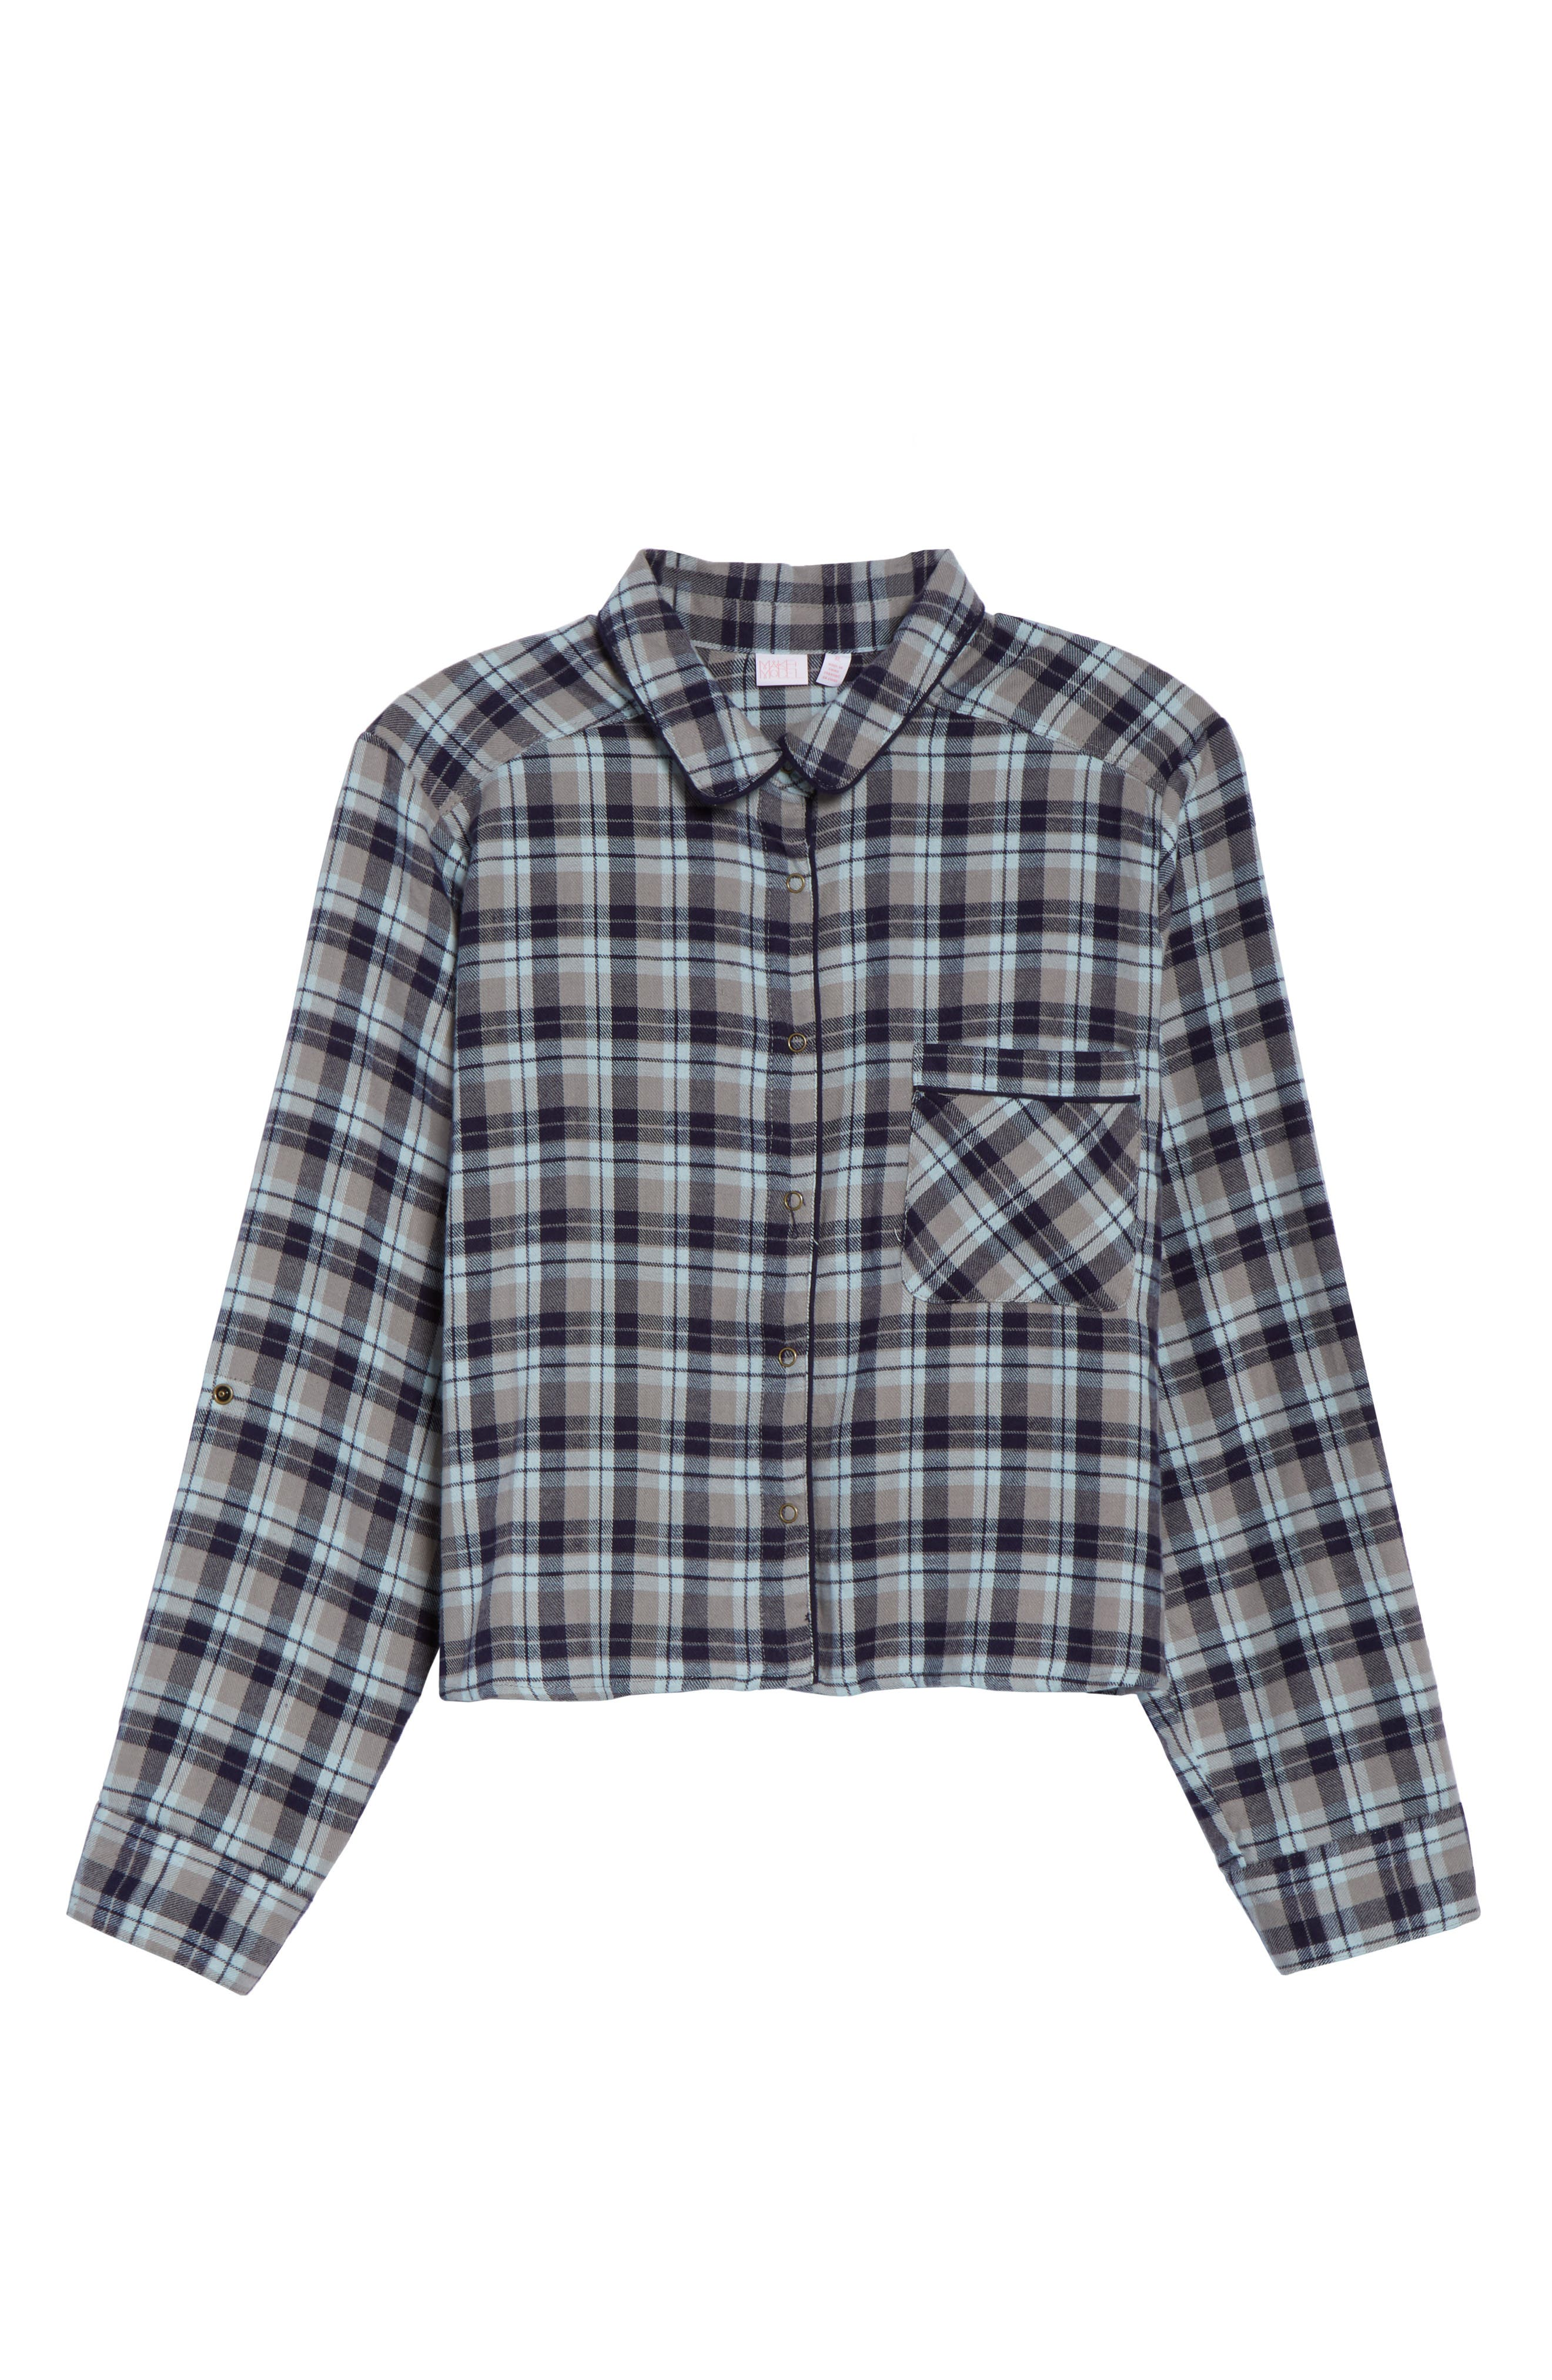 Crop Flannel Pajama Top,                             Alternate thumbnail 13, color,                             310